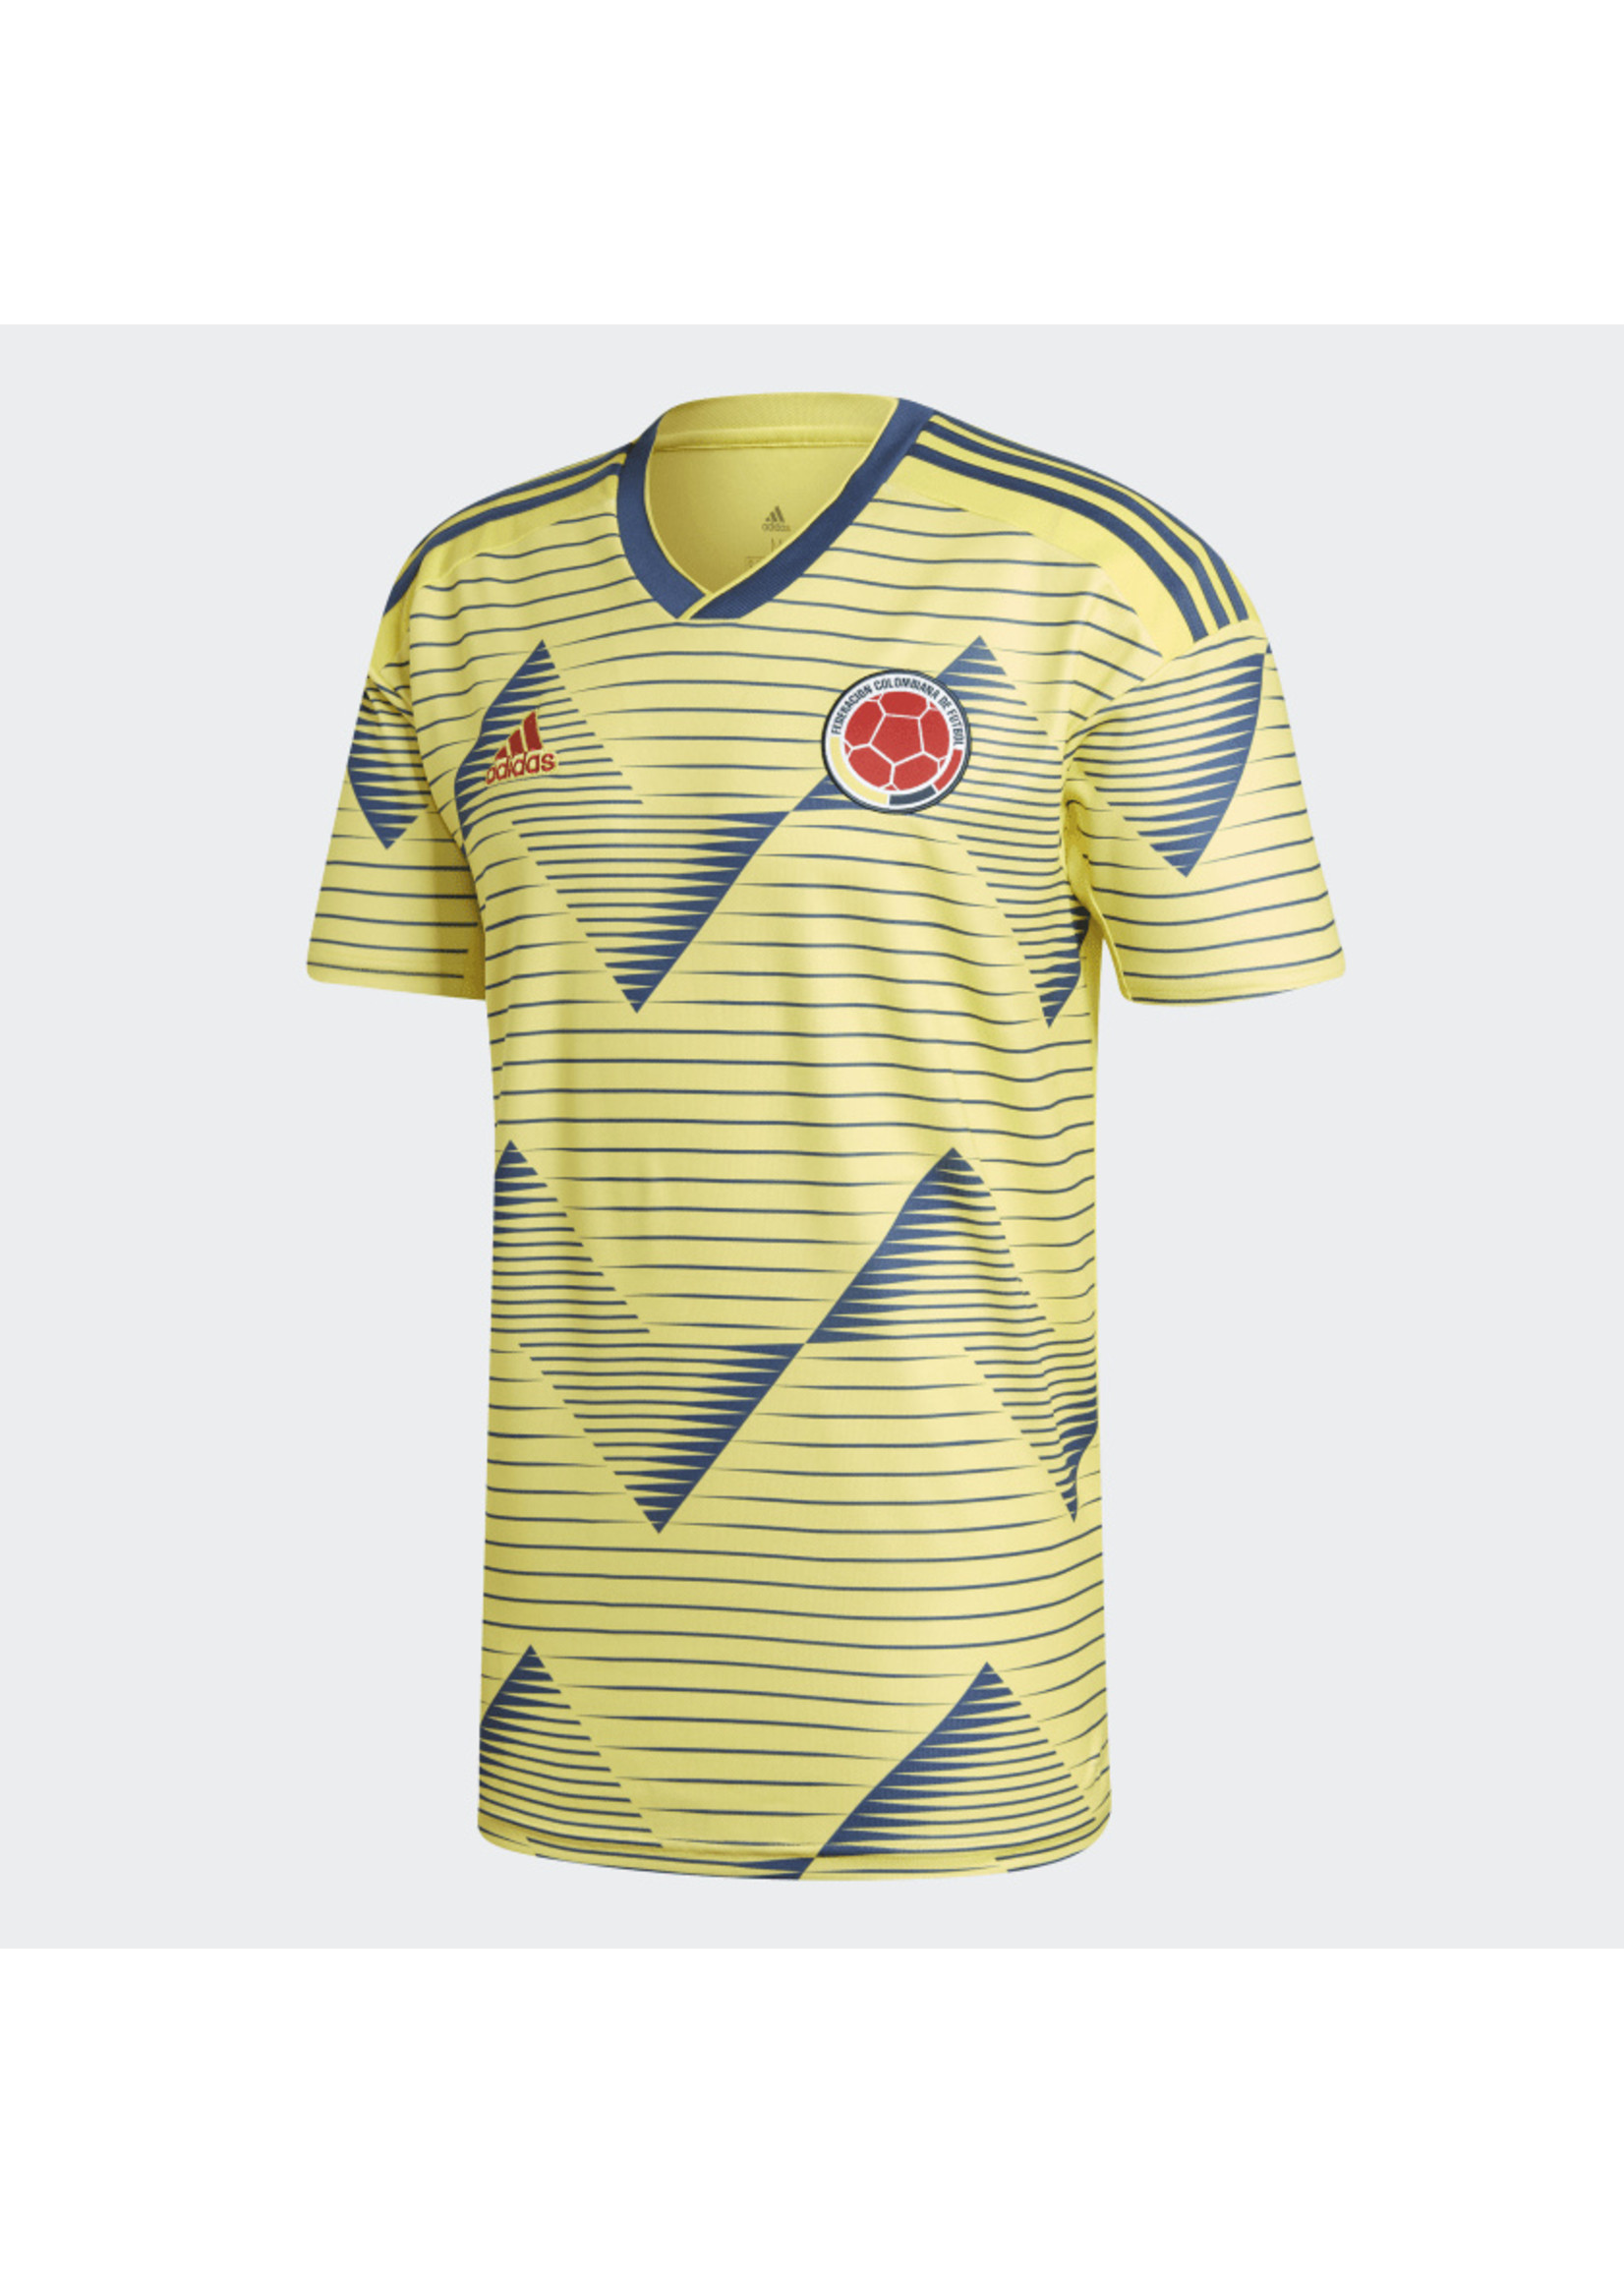 Adidas Colombia 19/20 Home Jersey Adult XL